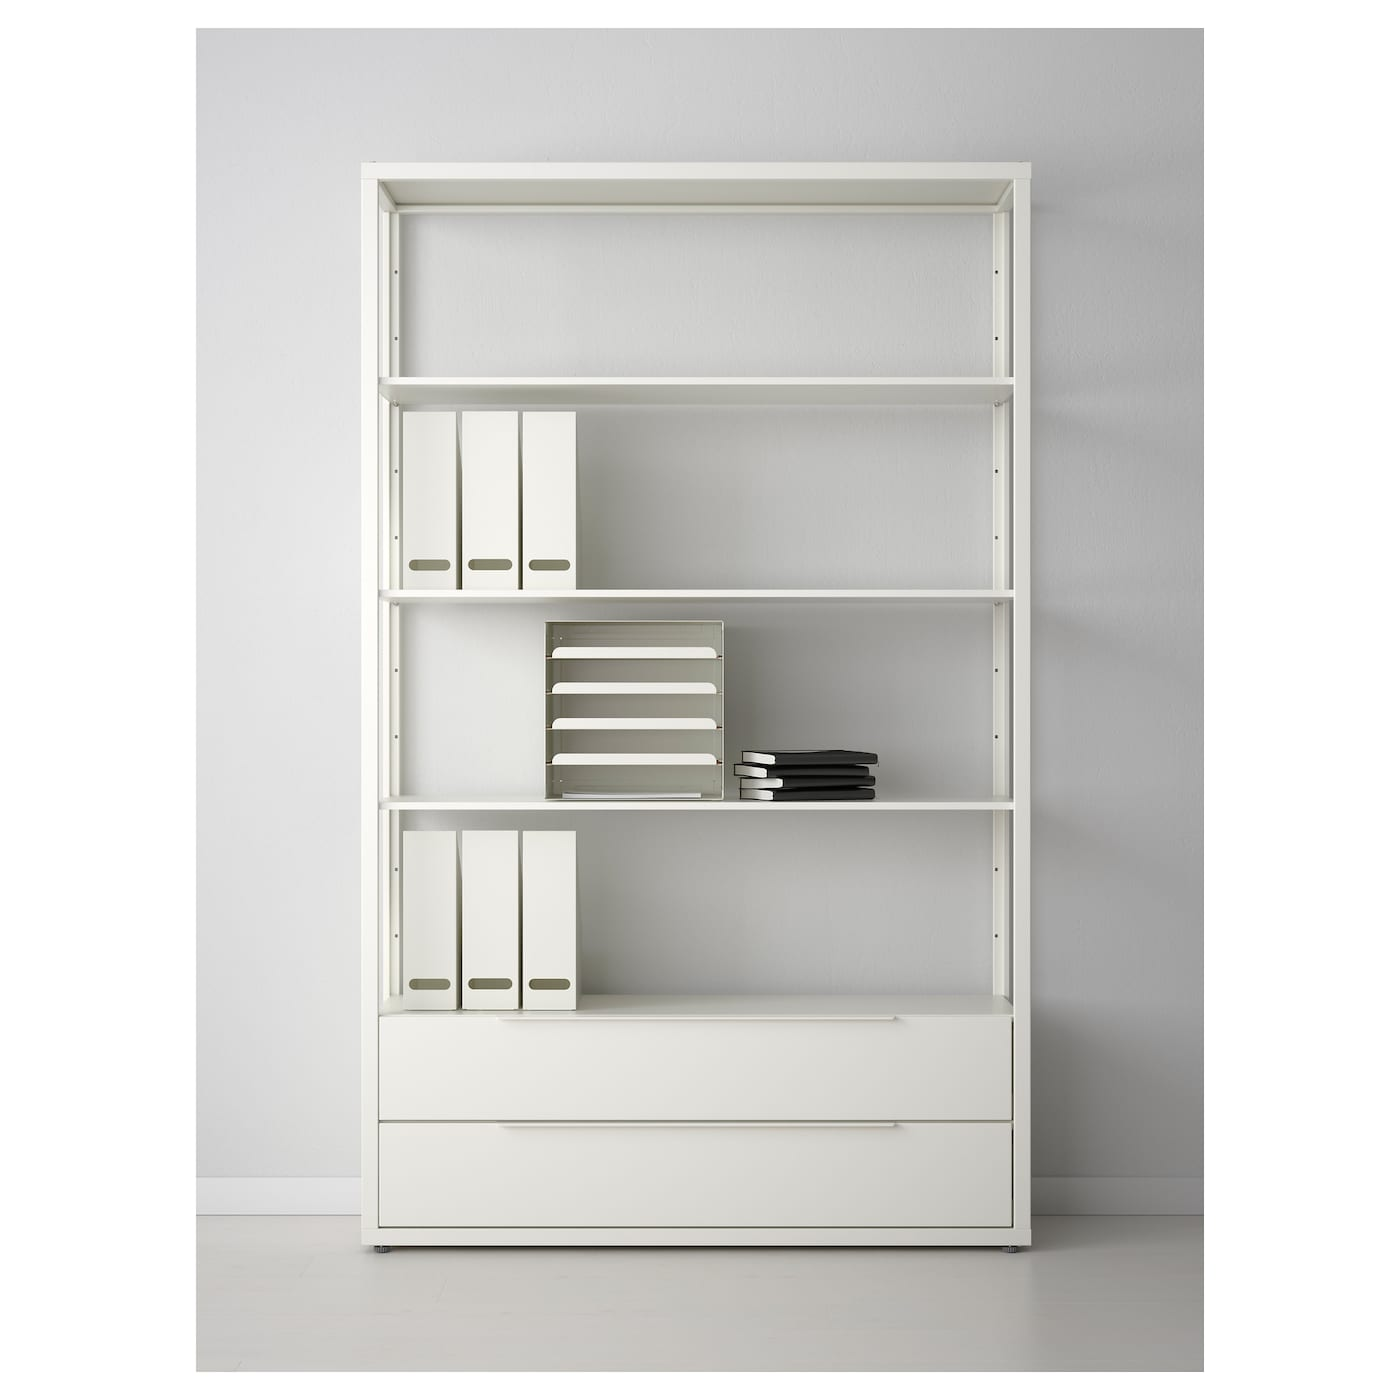 fj lkinge shelving unit with drawers white 118 x 193 cm ikea. Black Bedroom Furniture Sets. Home Design Ideas